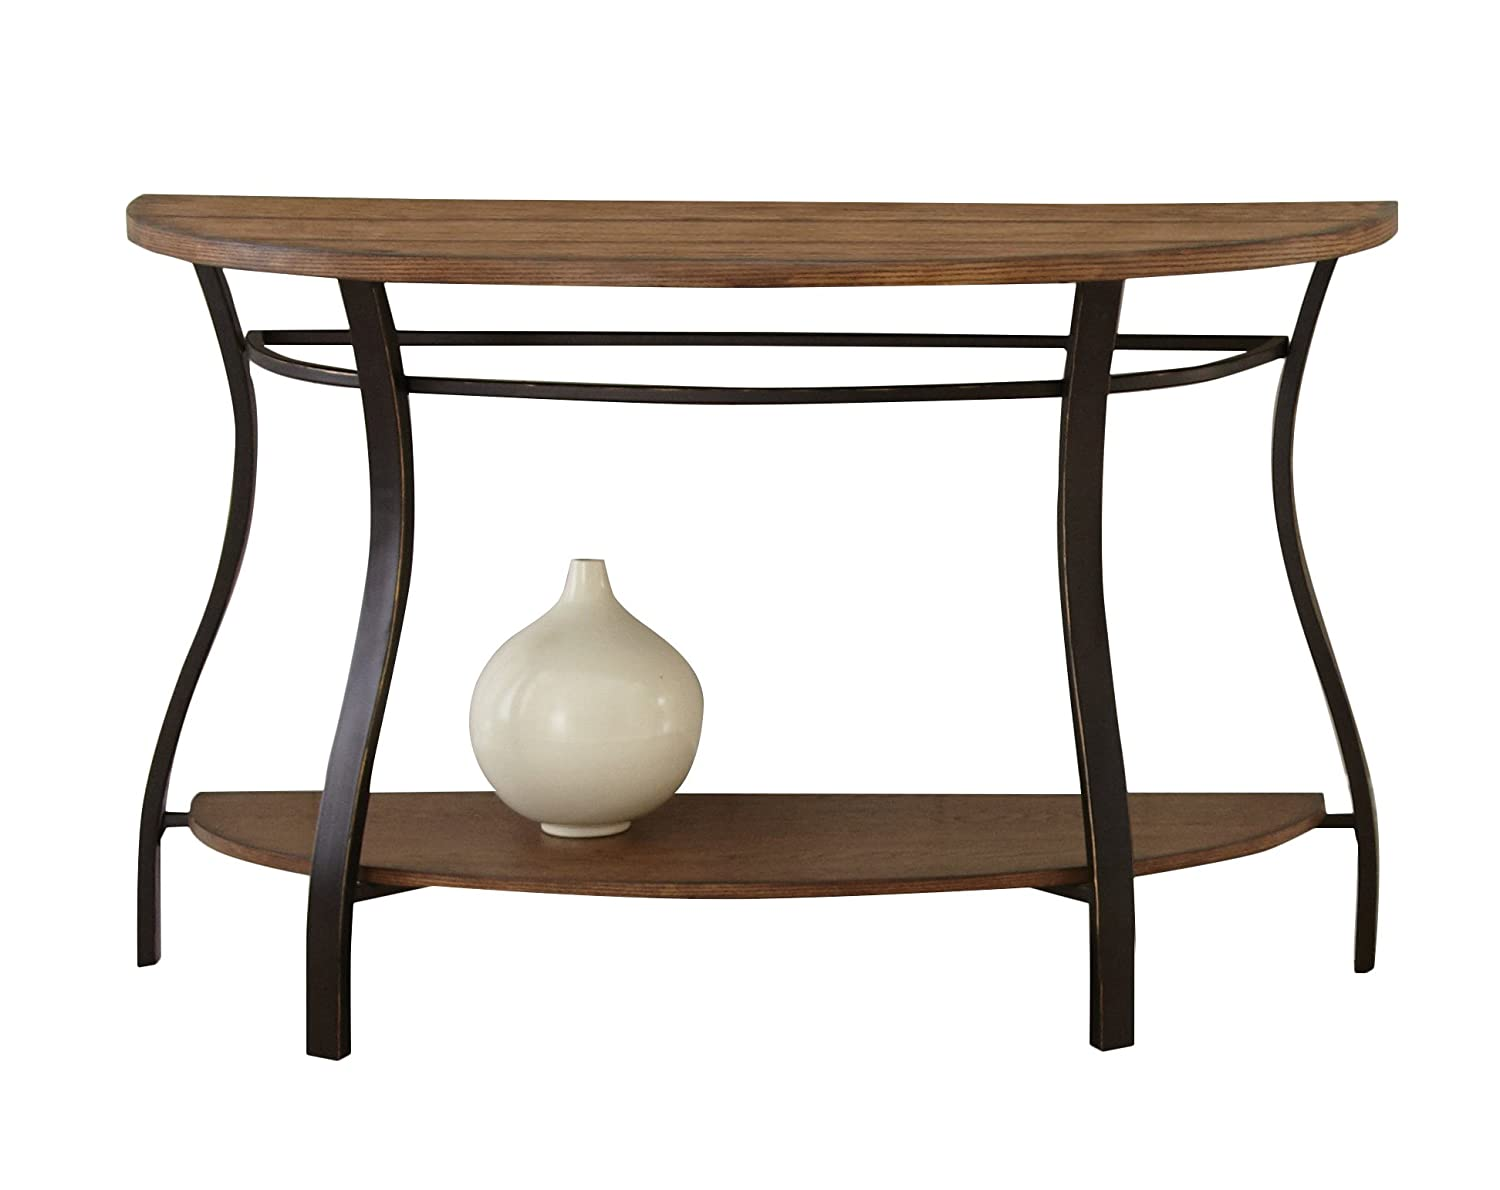 China Furniture Online Elmwood Console Table, 36 Inches Hand Crafted Ming Style Cabinet in Matte Black with Distressed Finish